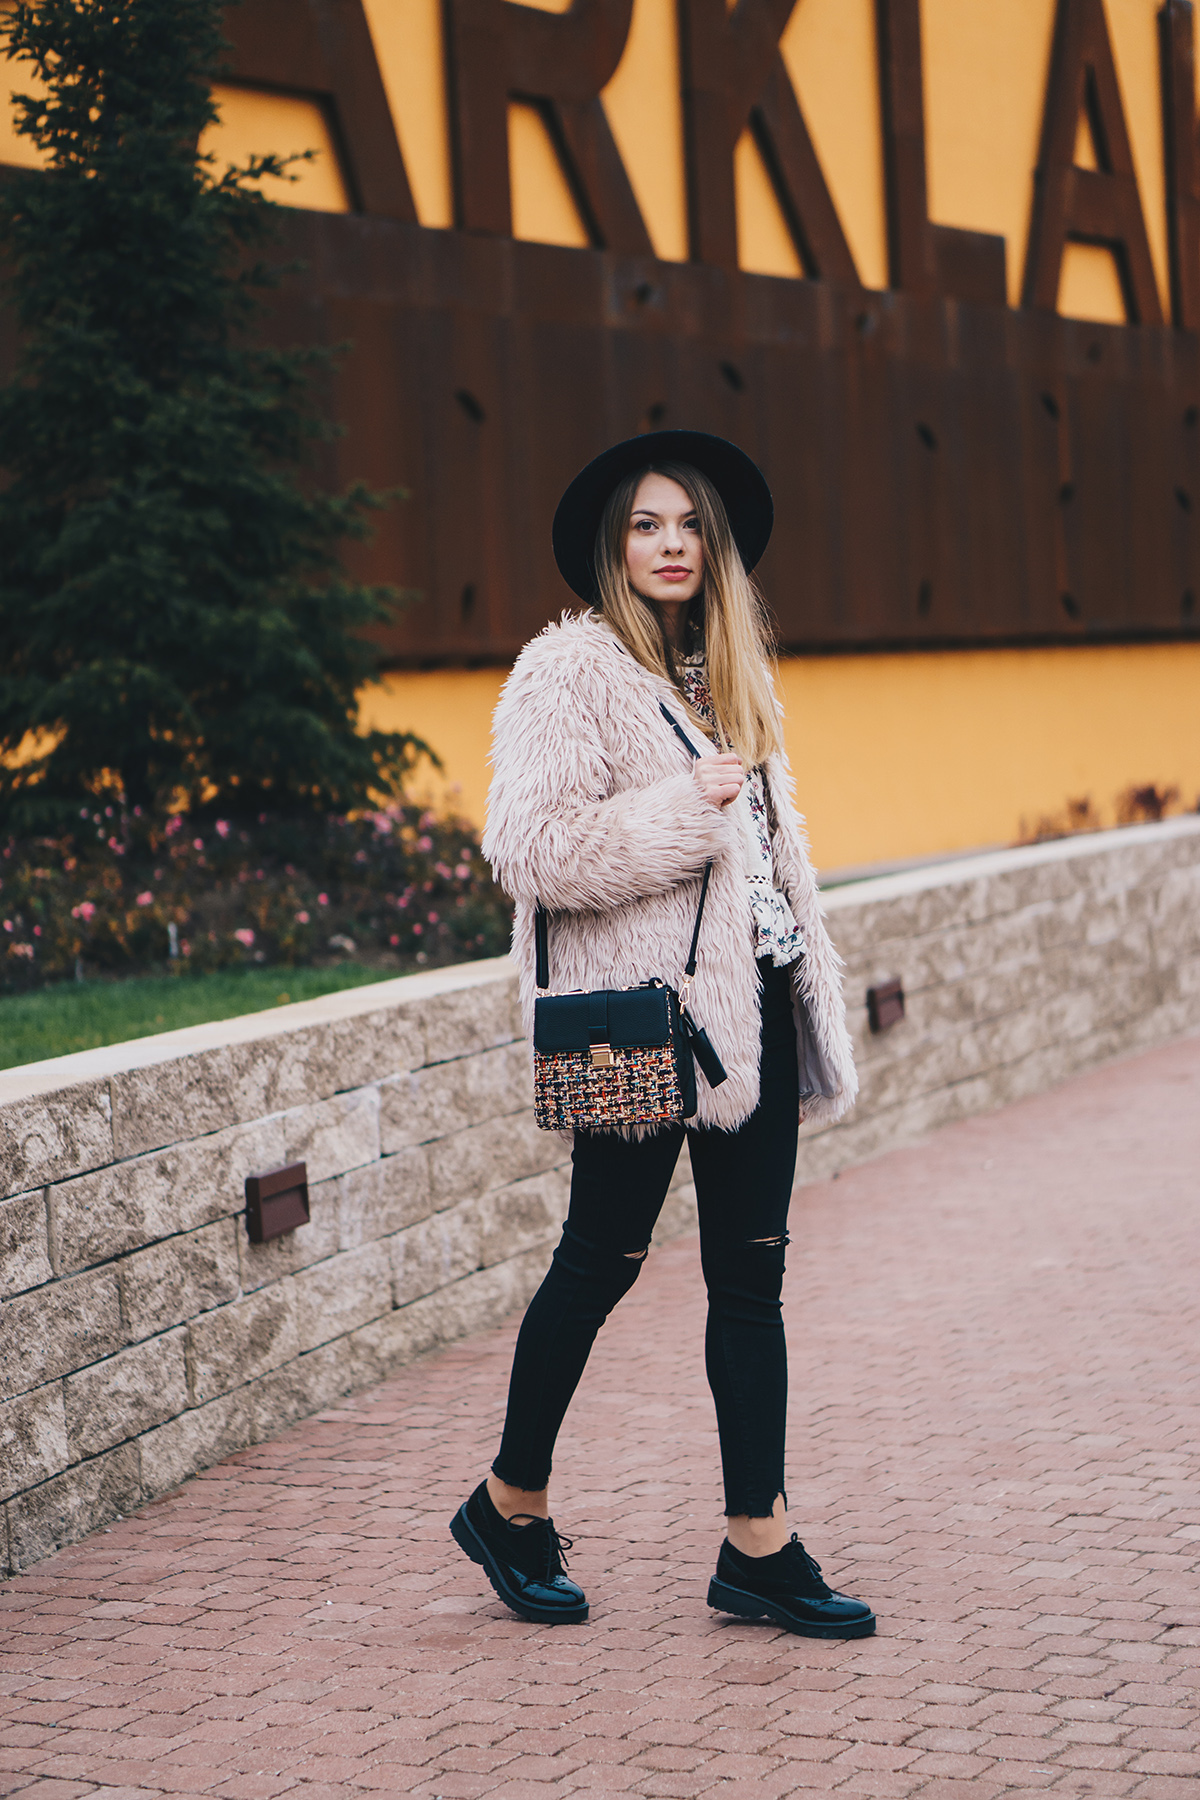 floral-embroidered-blouse-pink-fur-coat-ripped-black-jeans-brogues-winter-outfit-3